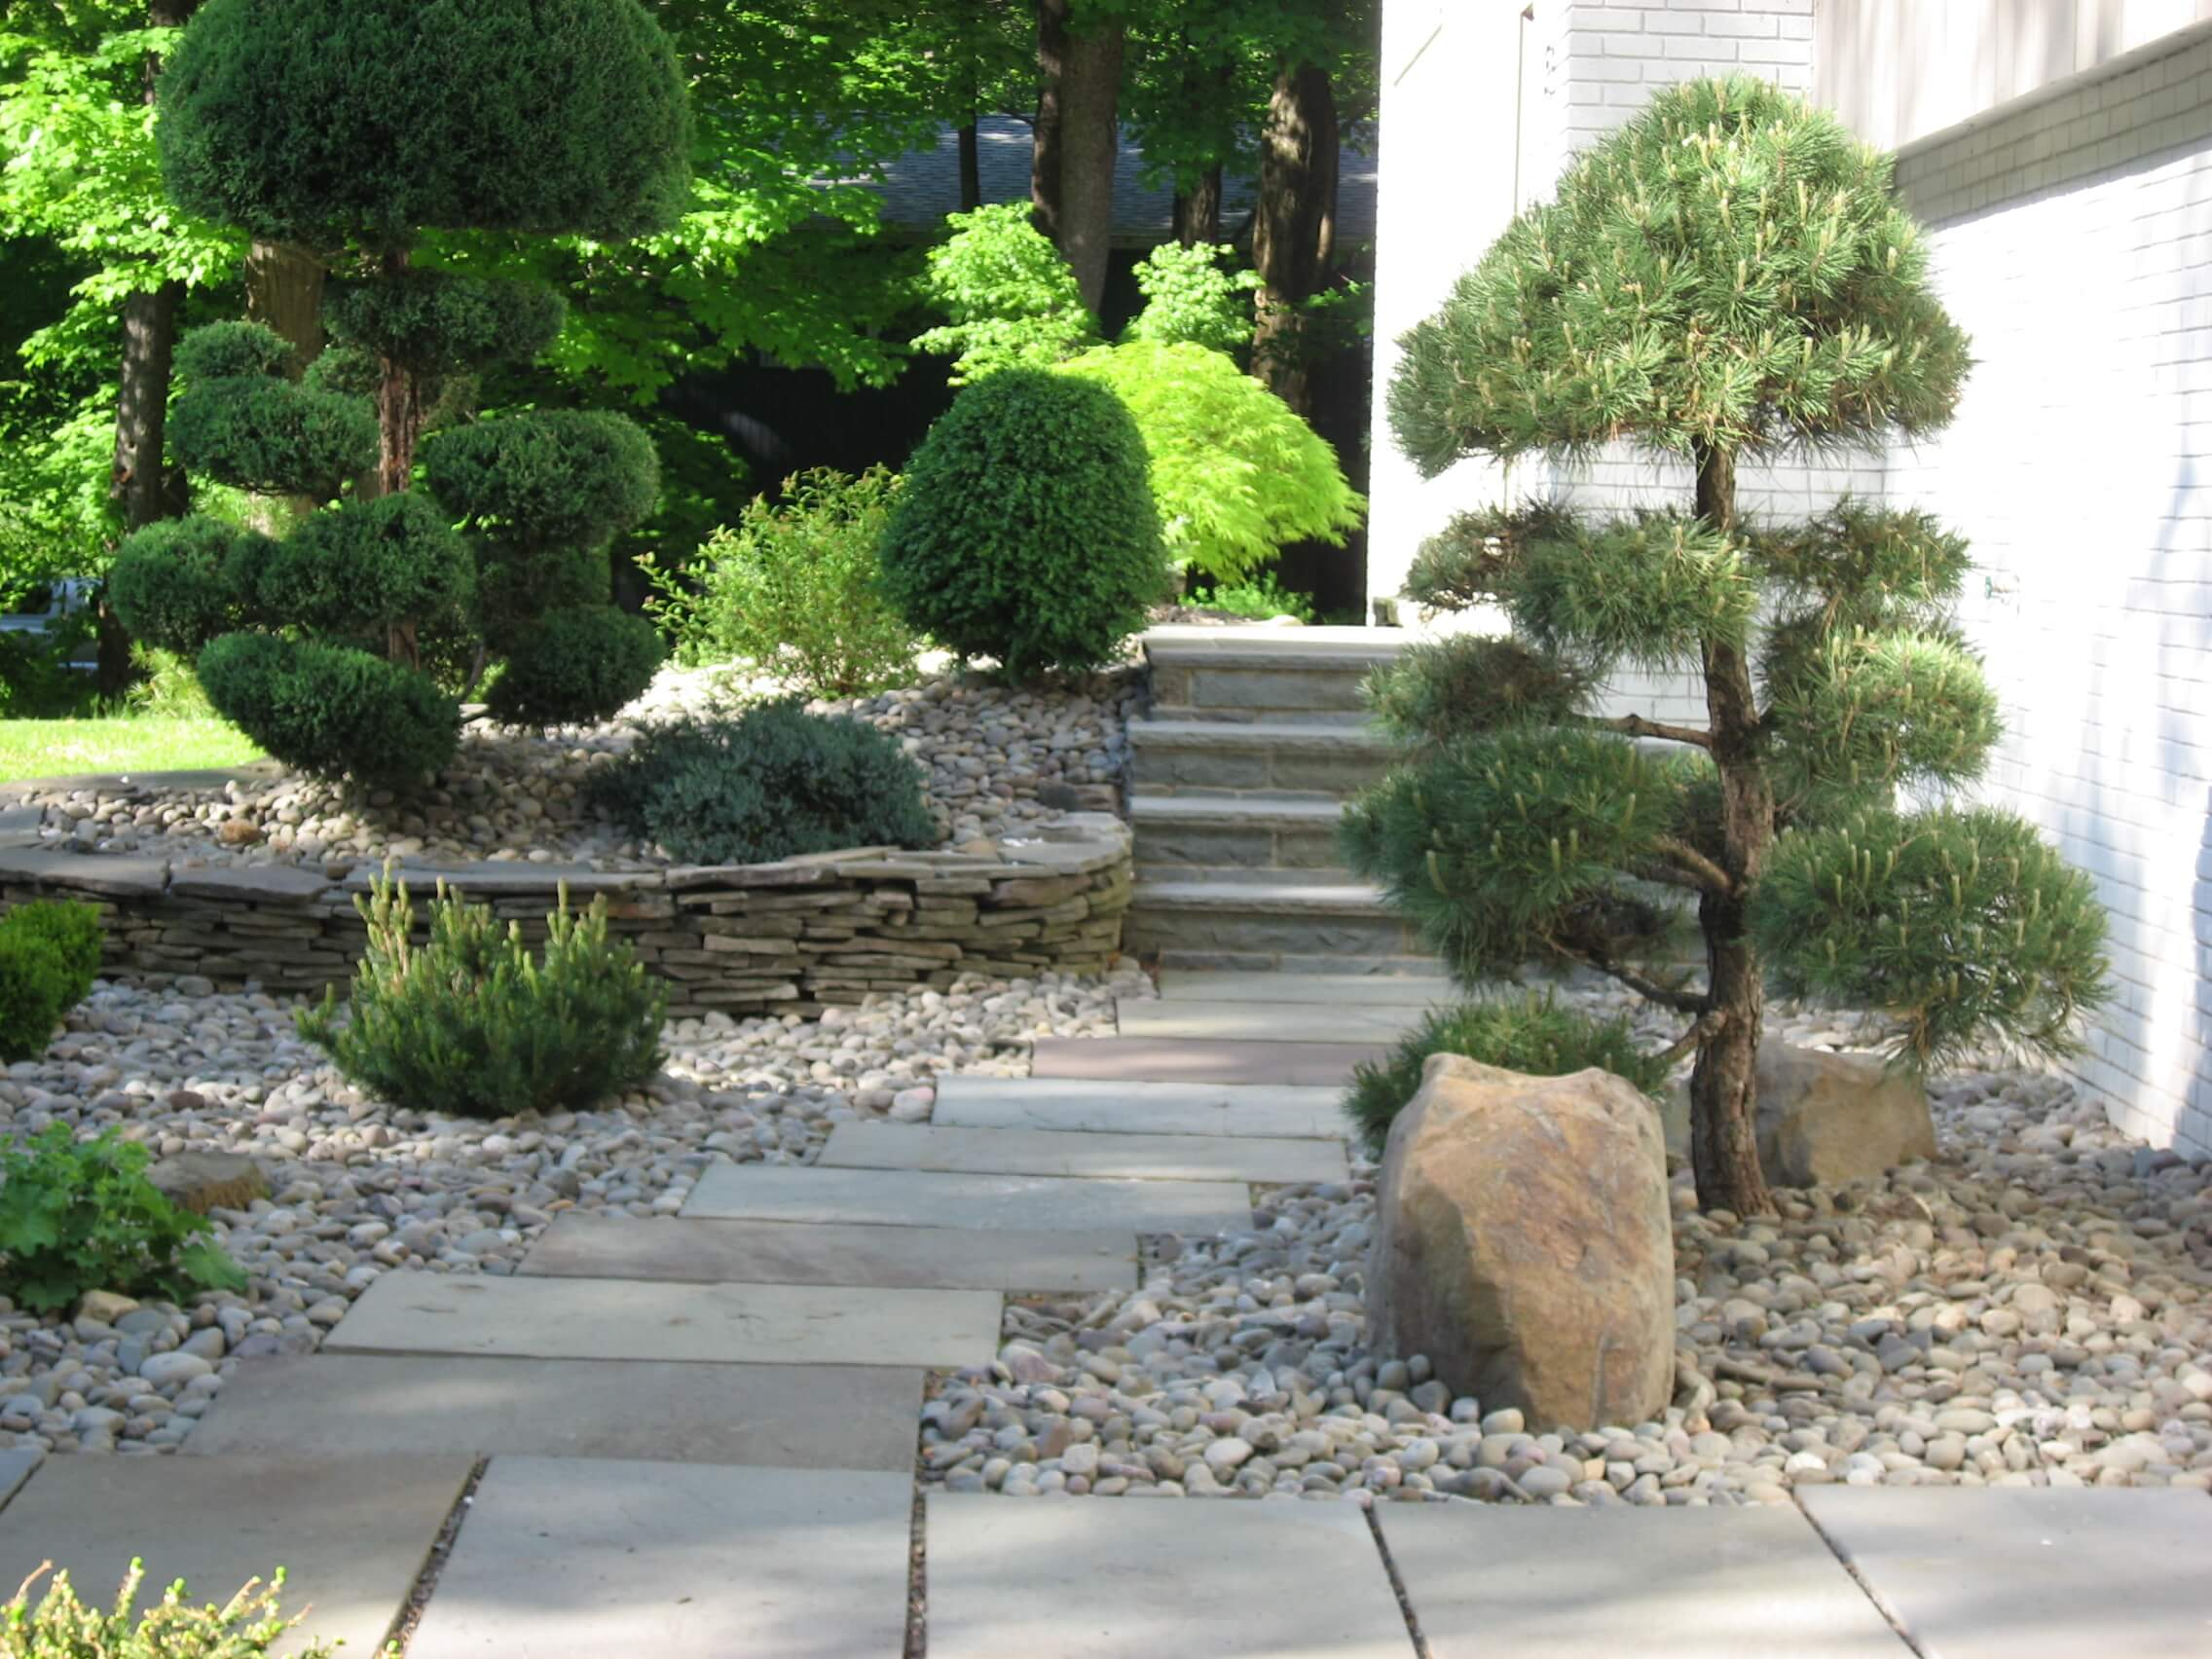 Landscape design landscape garden design in stone for Creative landscape design